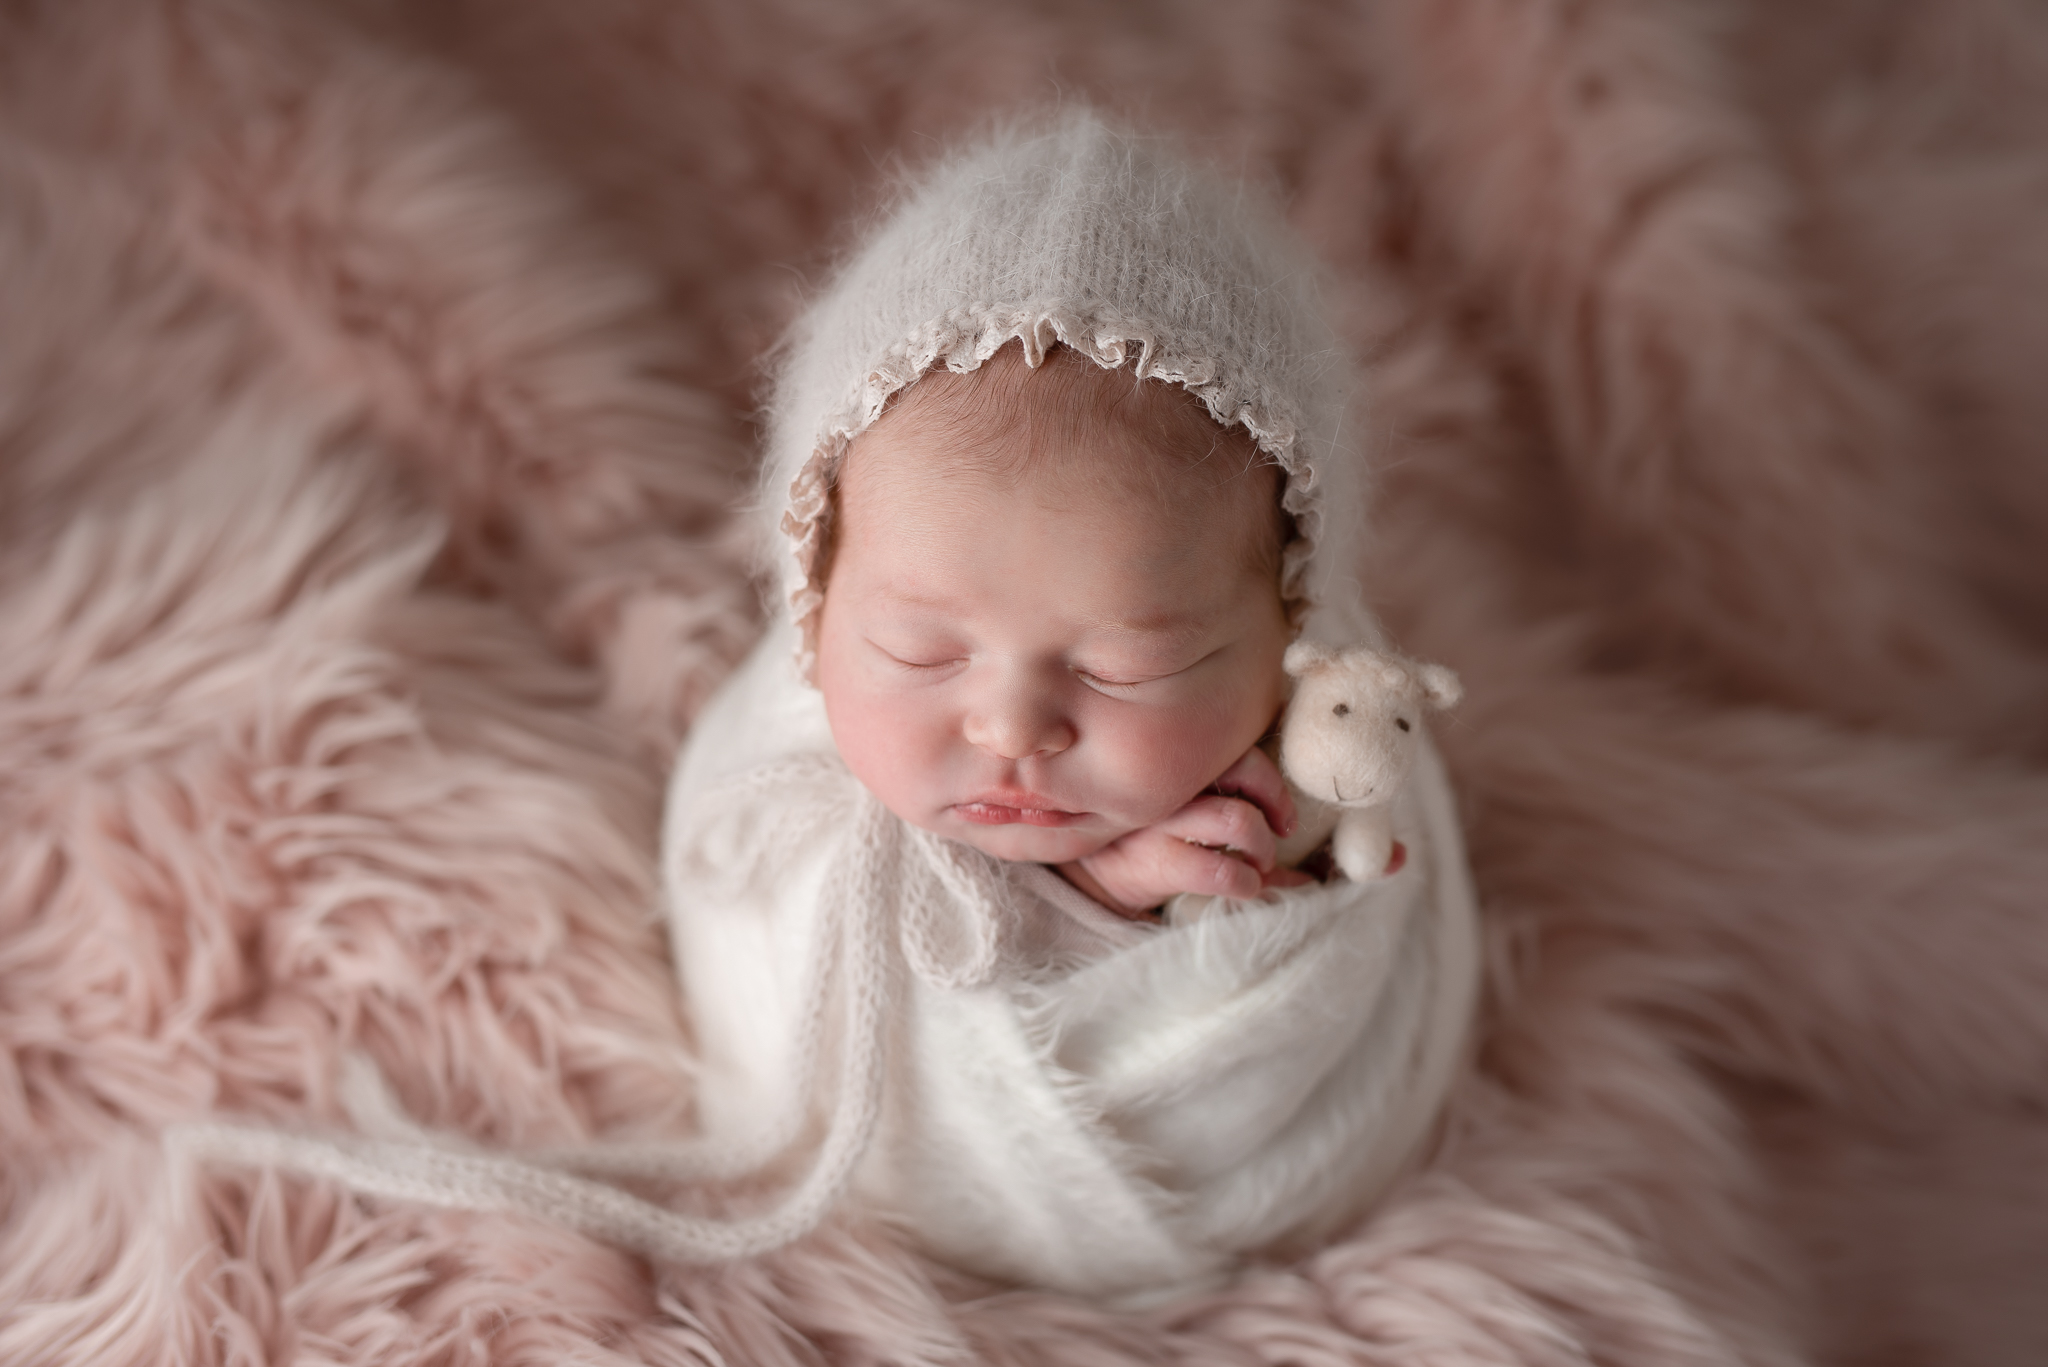 Newborn462NaomiLuciennePhotography032019-Edit.jpg